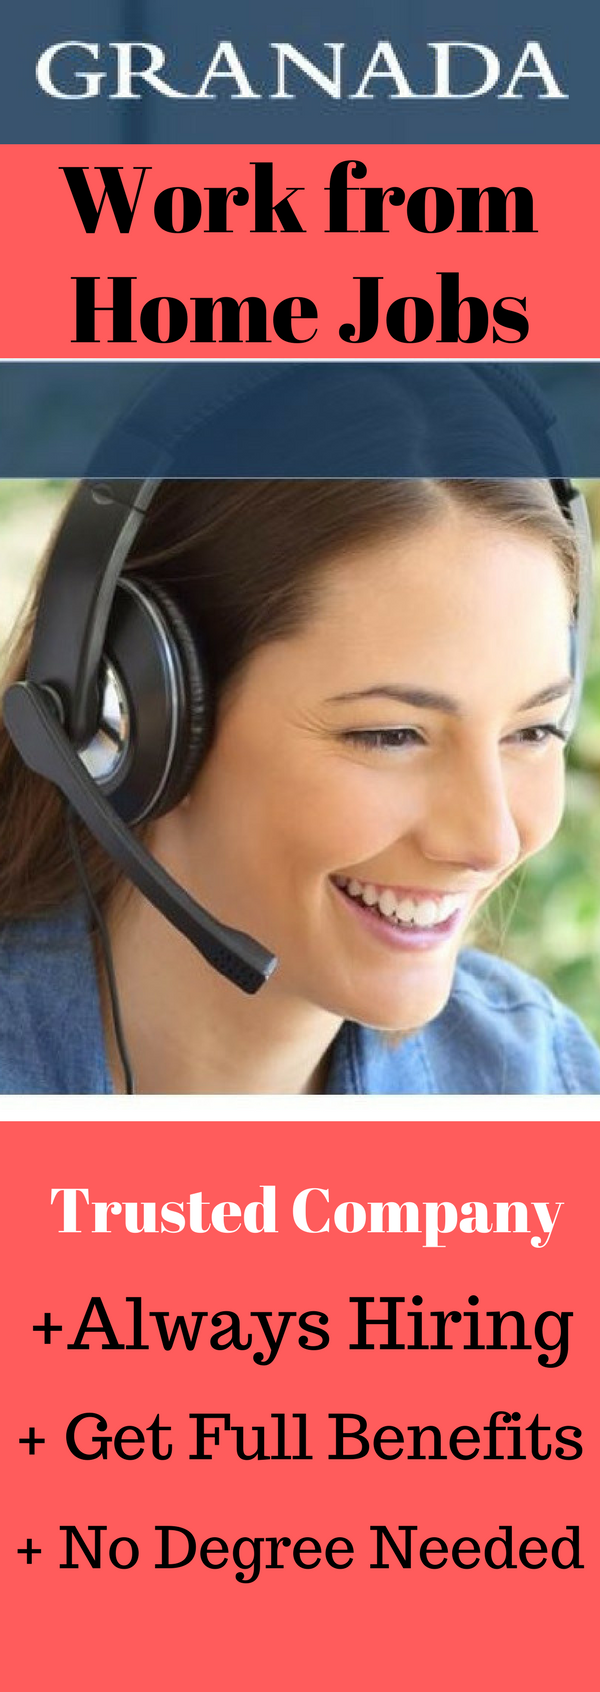 Work from Home Jobs Hiring Now. Legitimate Work from Home Jobs Hiring Now.  Granada is Hiring Work from Home Customer Service Representatives in 8  States.